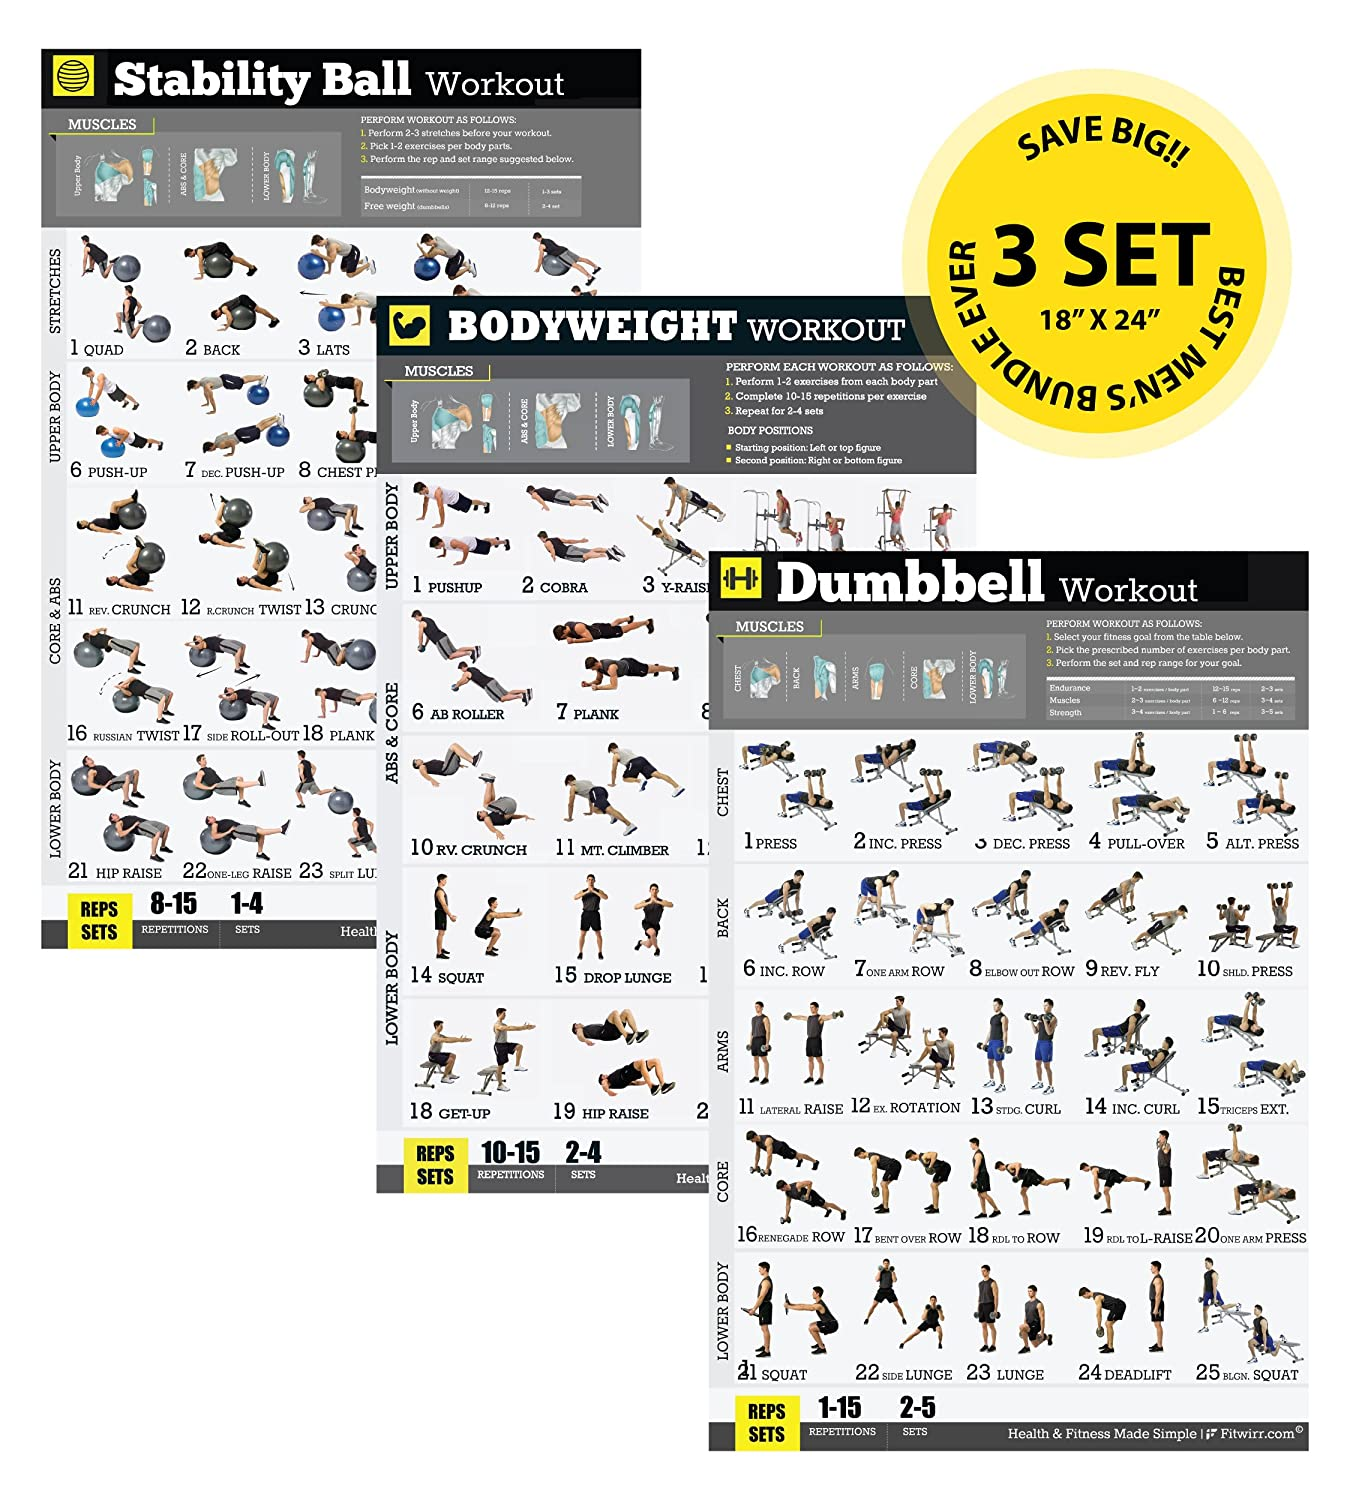 Gym/Home Exercise Posters Set of 3 Workout Chart Now Laminated - Workout  Plans for Men - Strength Training Workout - Build Muscles, Lose Body Fat -